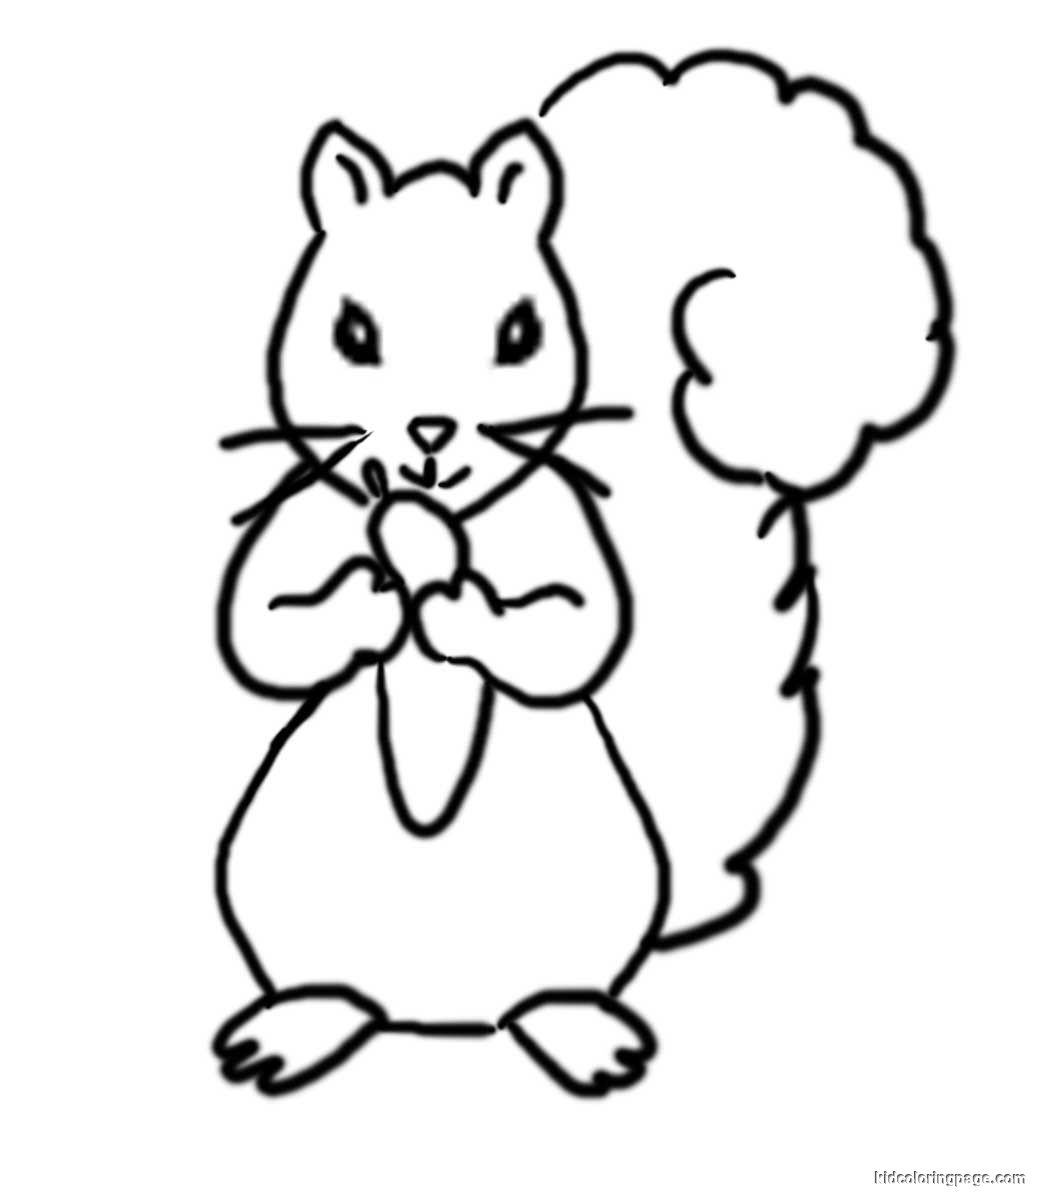 Squirrel Coloring Pages For Preschool | Free Coloring Pages ...